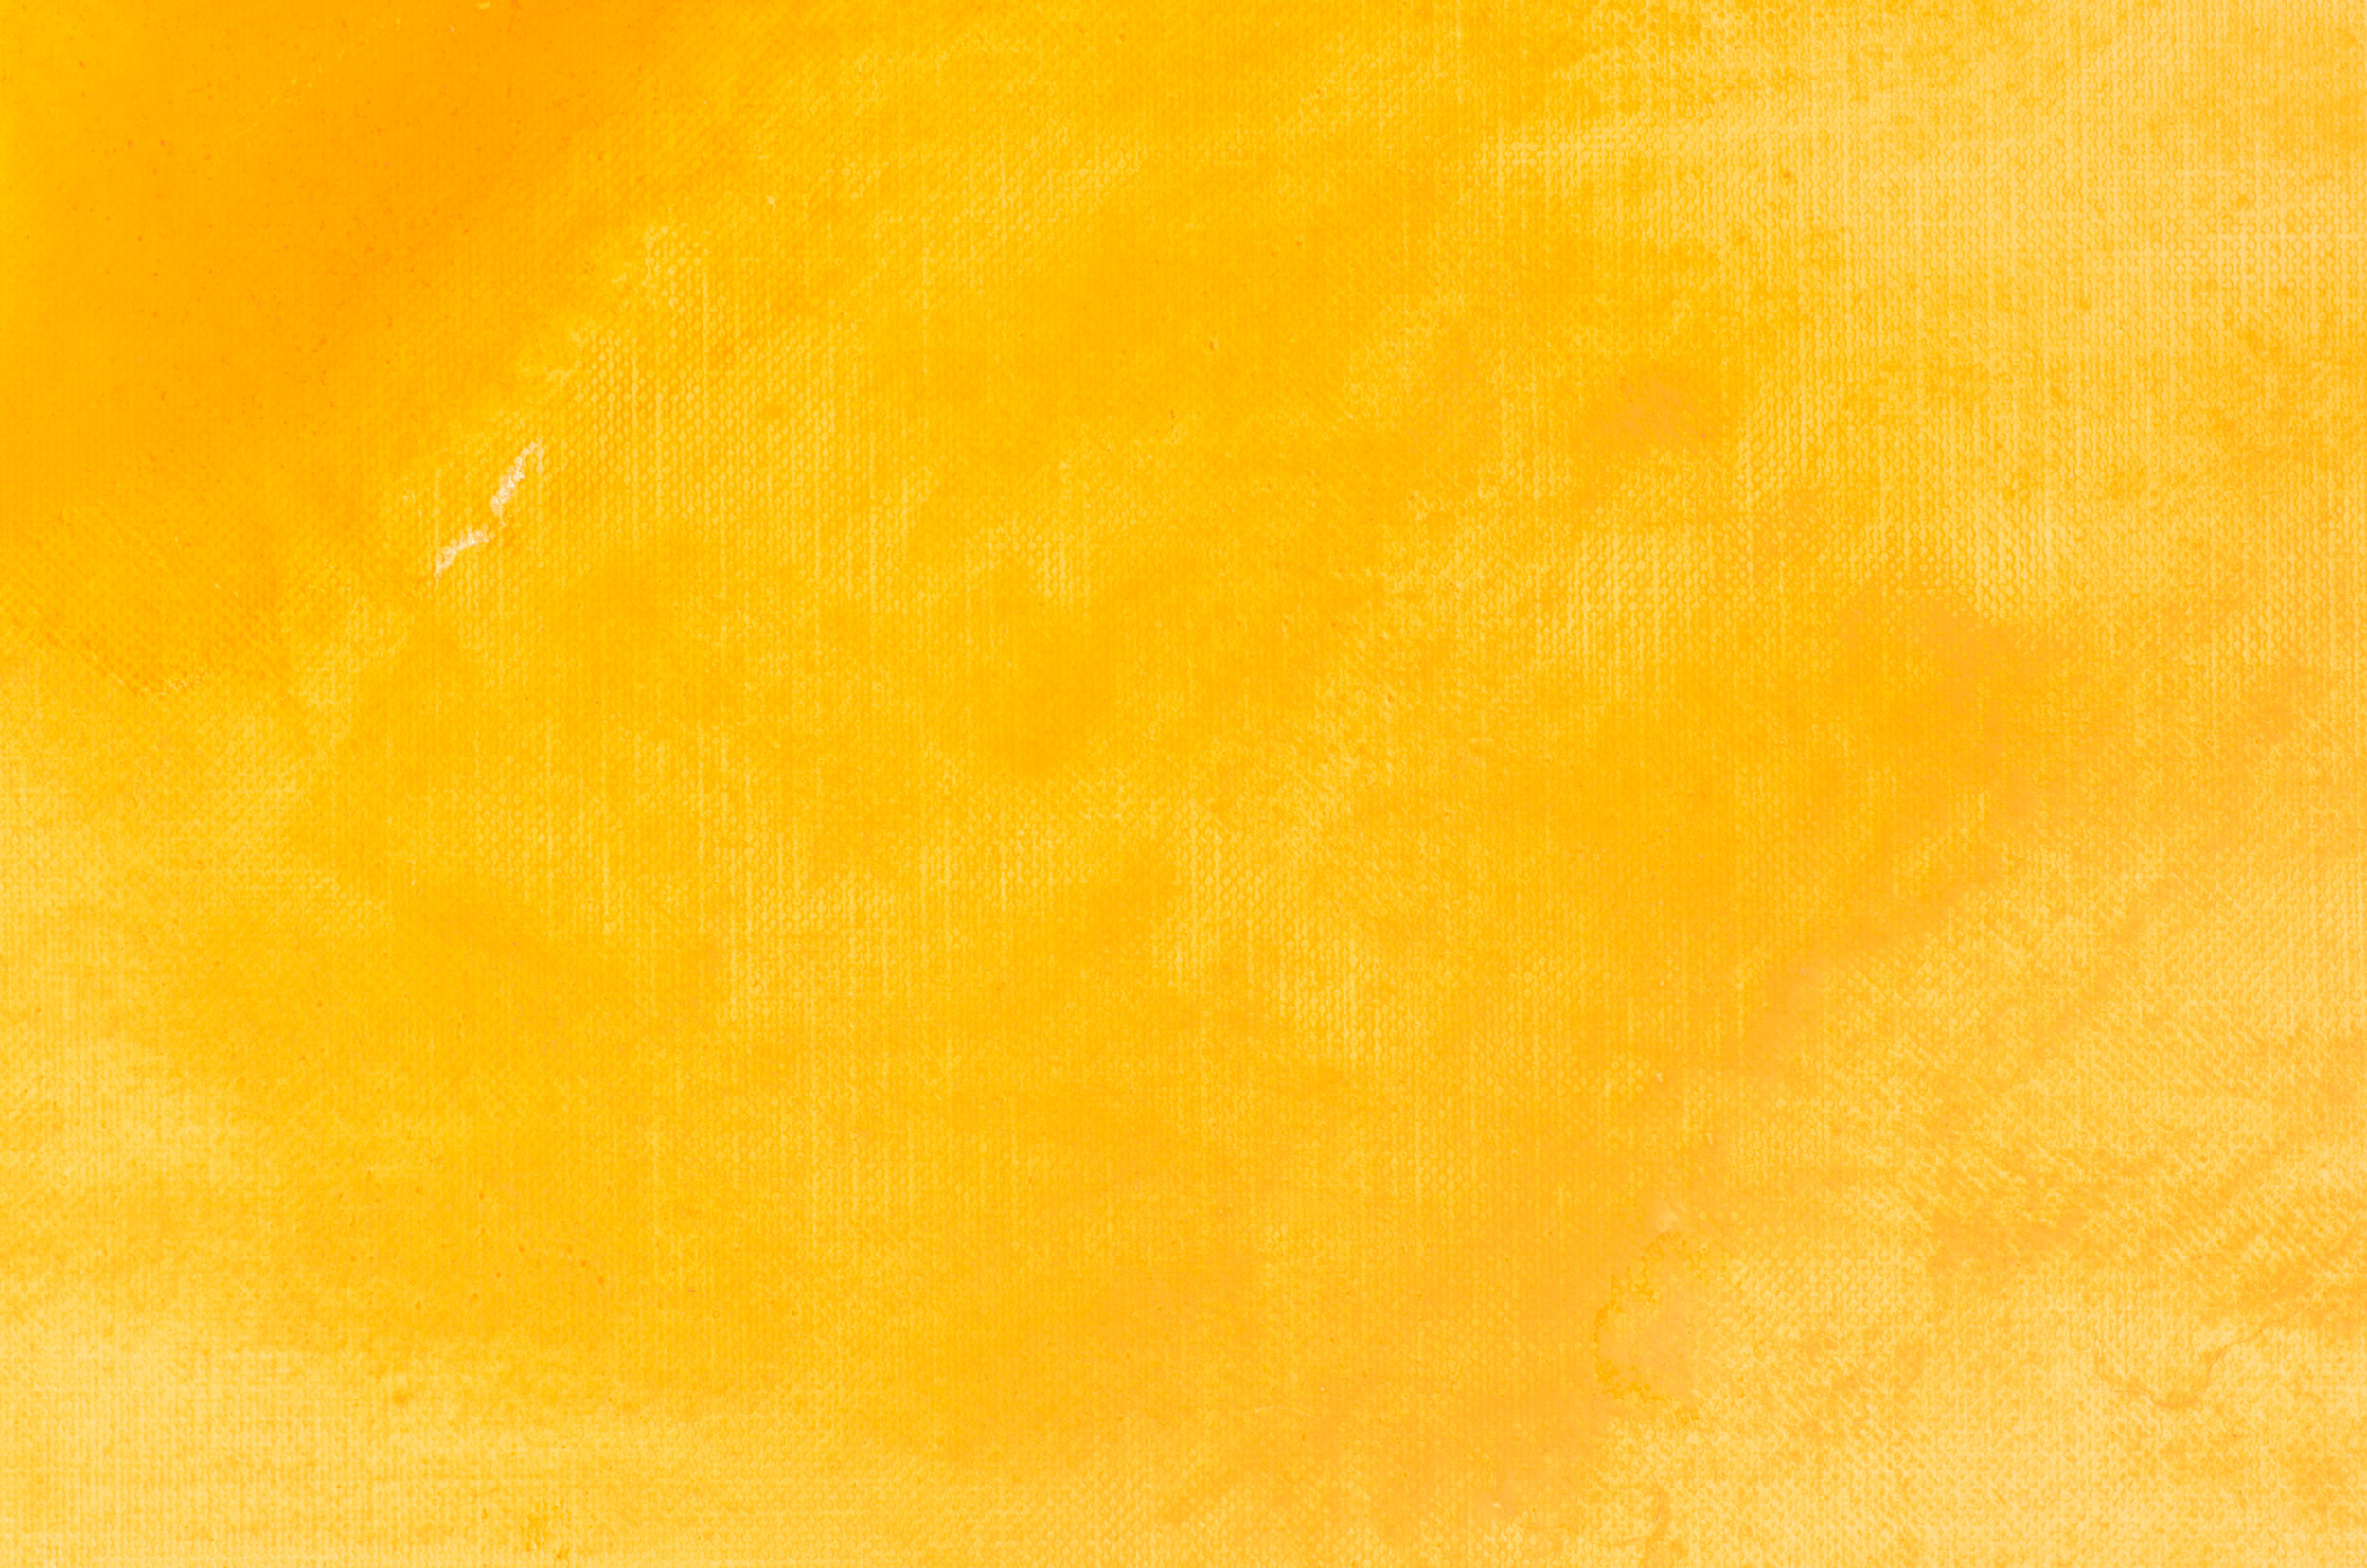 Yellow Background (Capstan).jpg